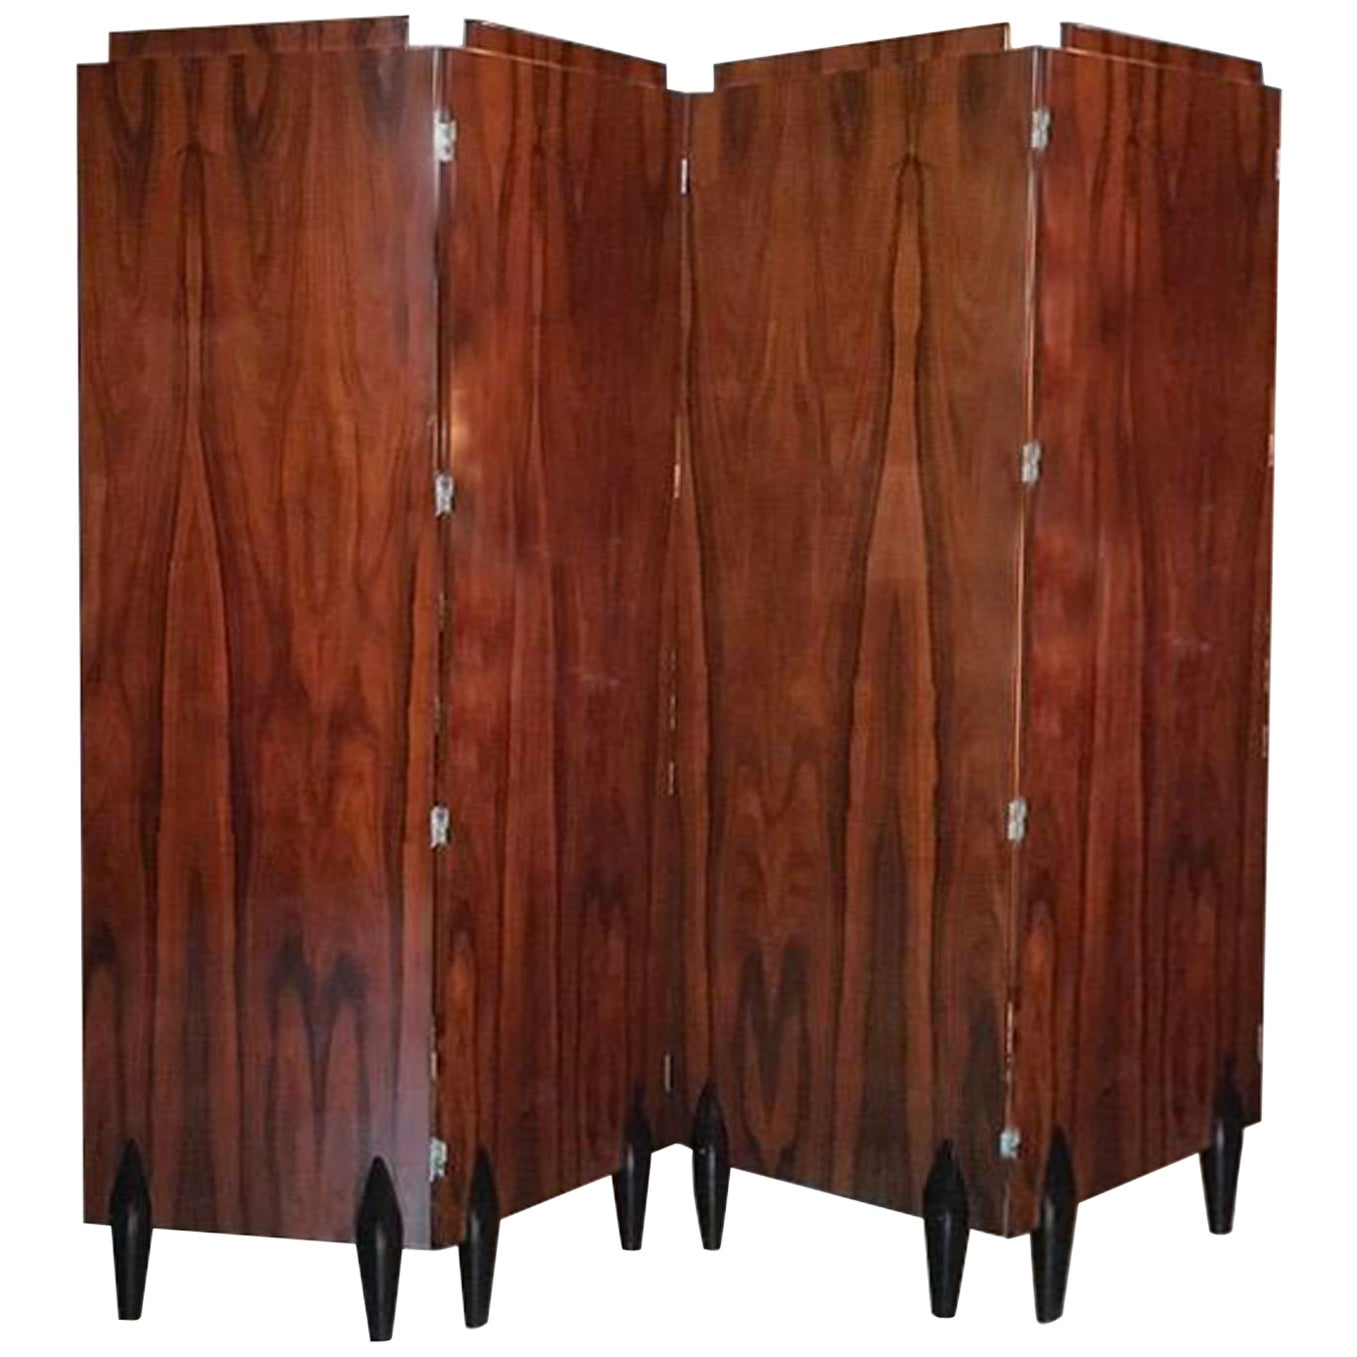 Italy Contemporary Design Four Folders Walnut Screen in Mid-Century Modern Style